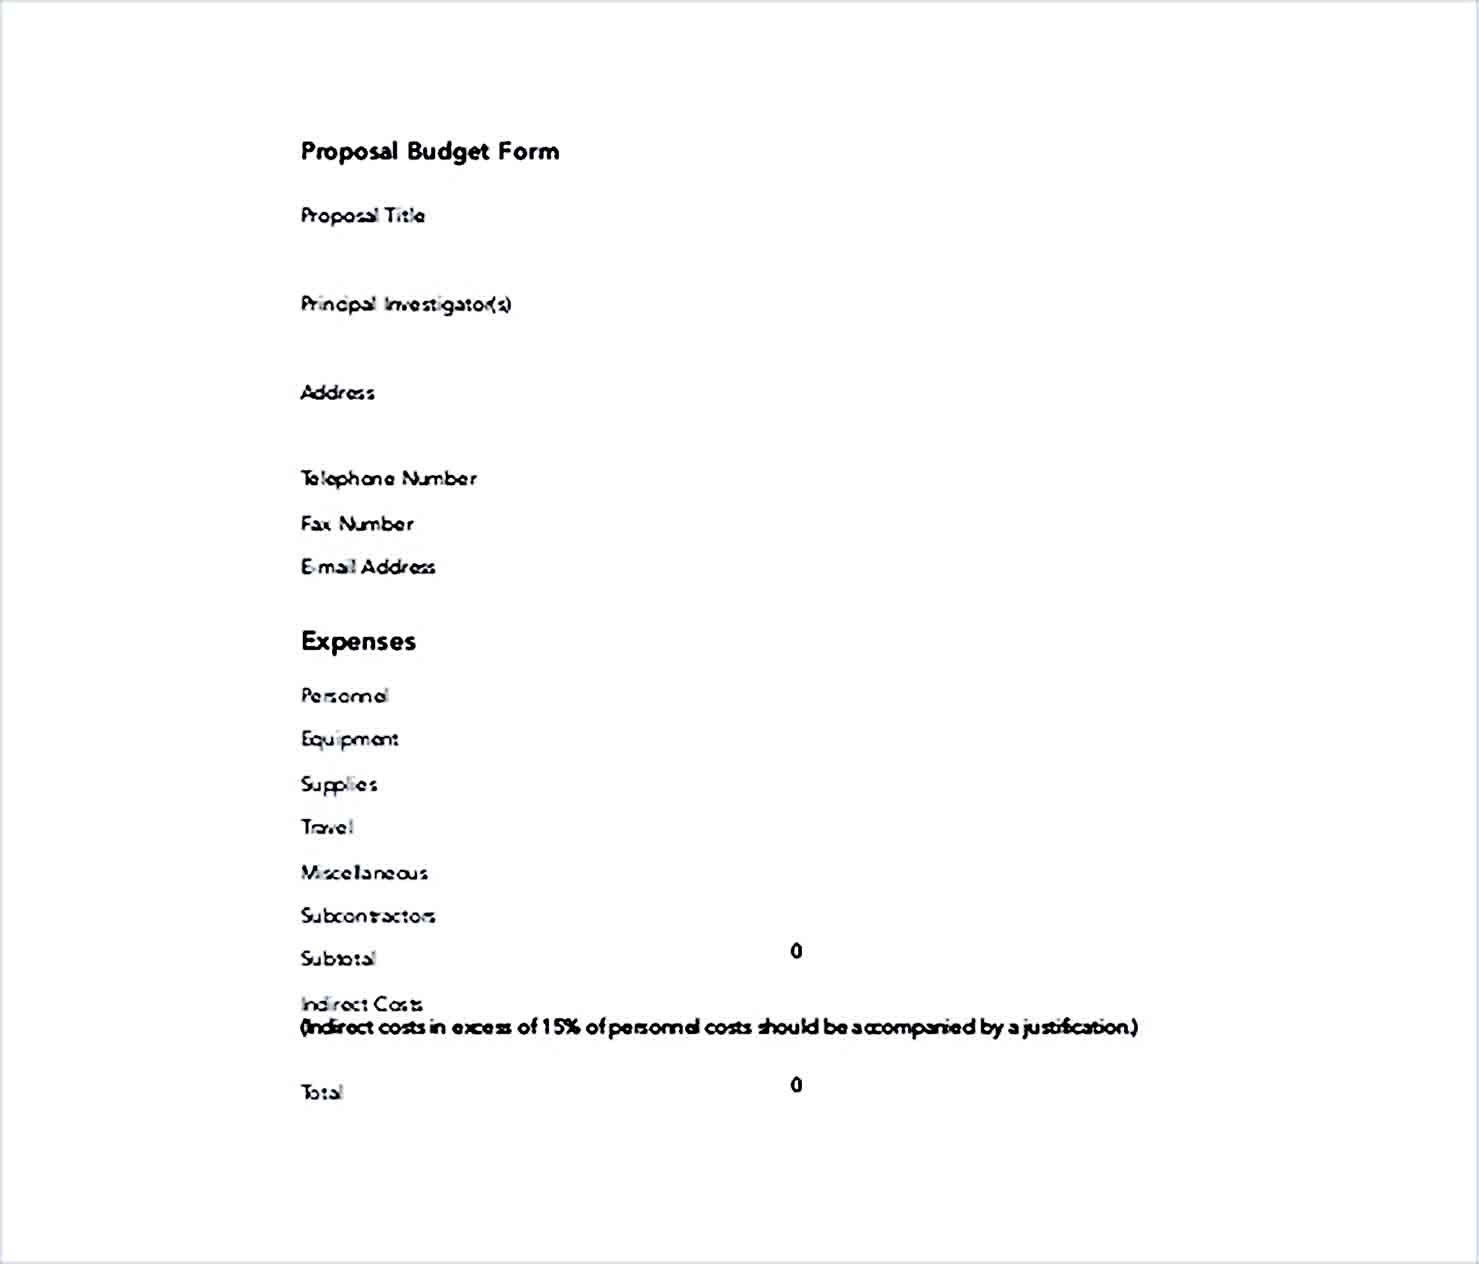 Sample IT Proposal Budget Form